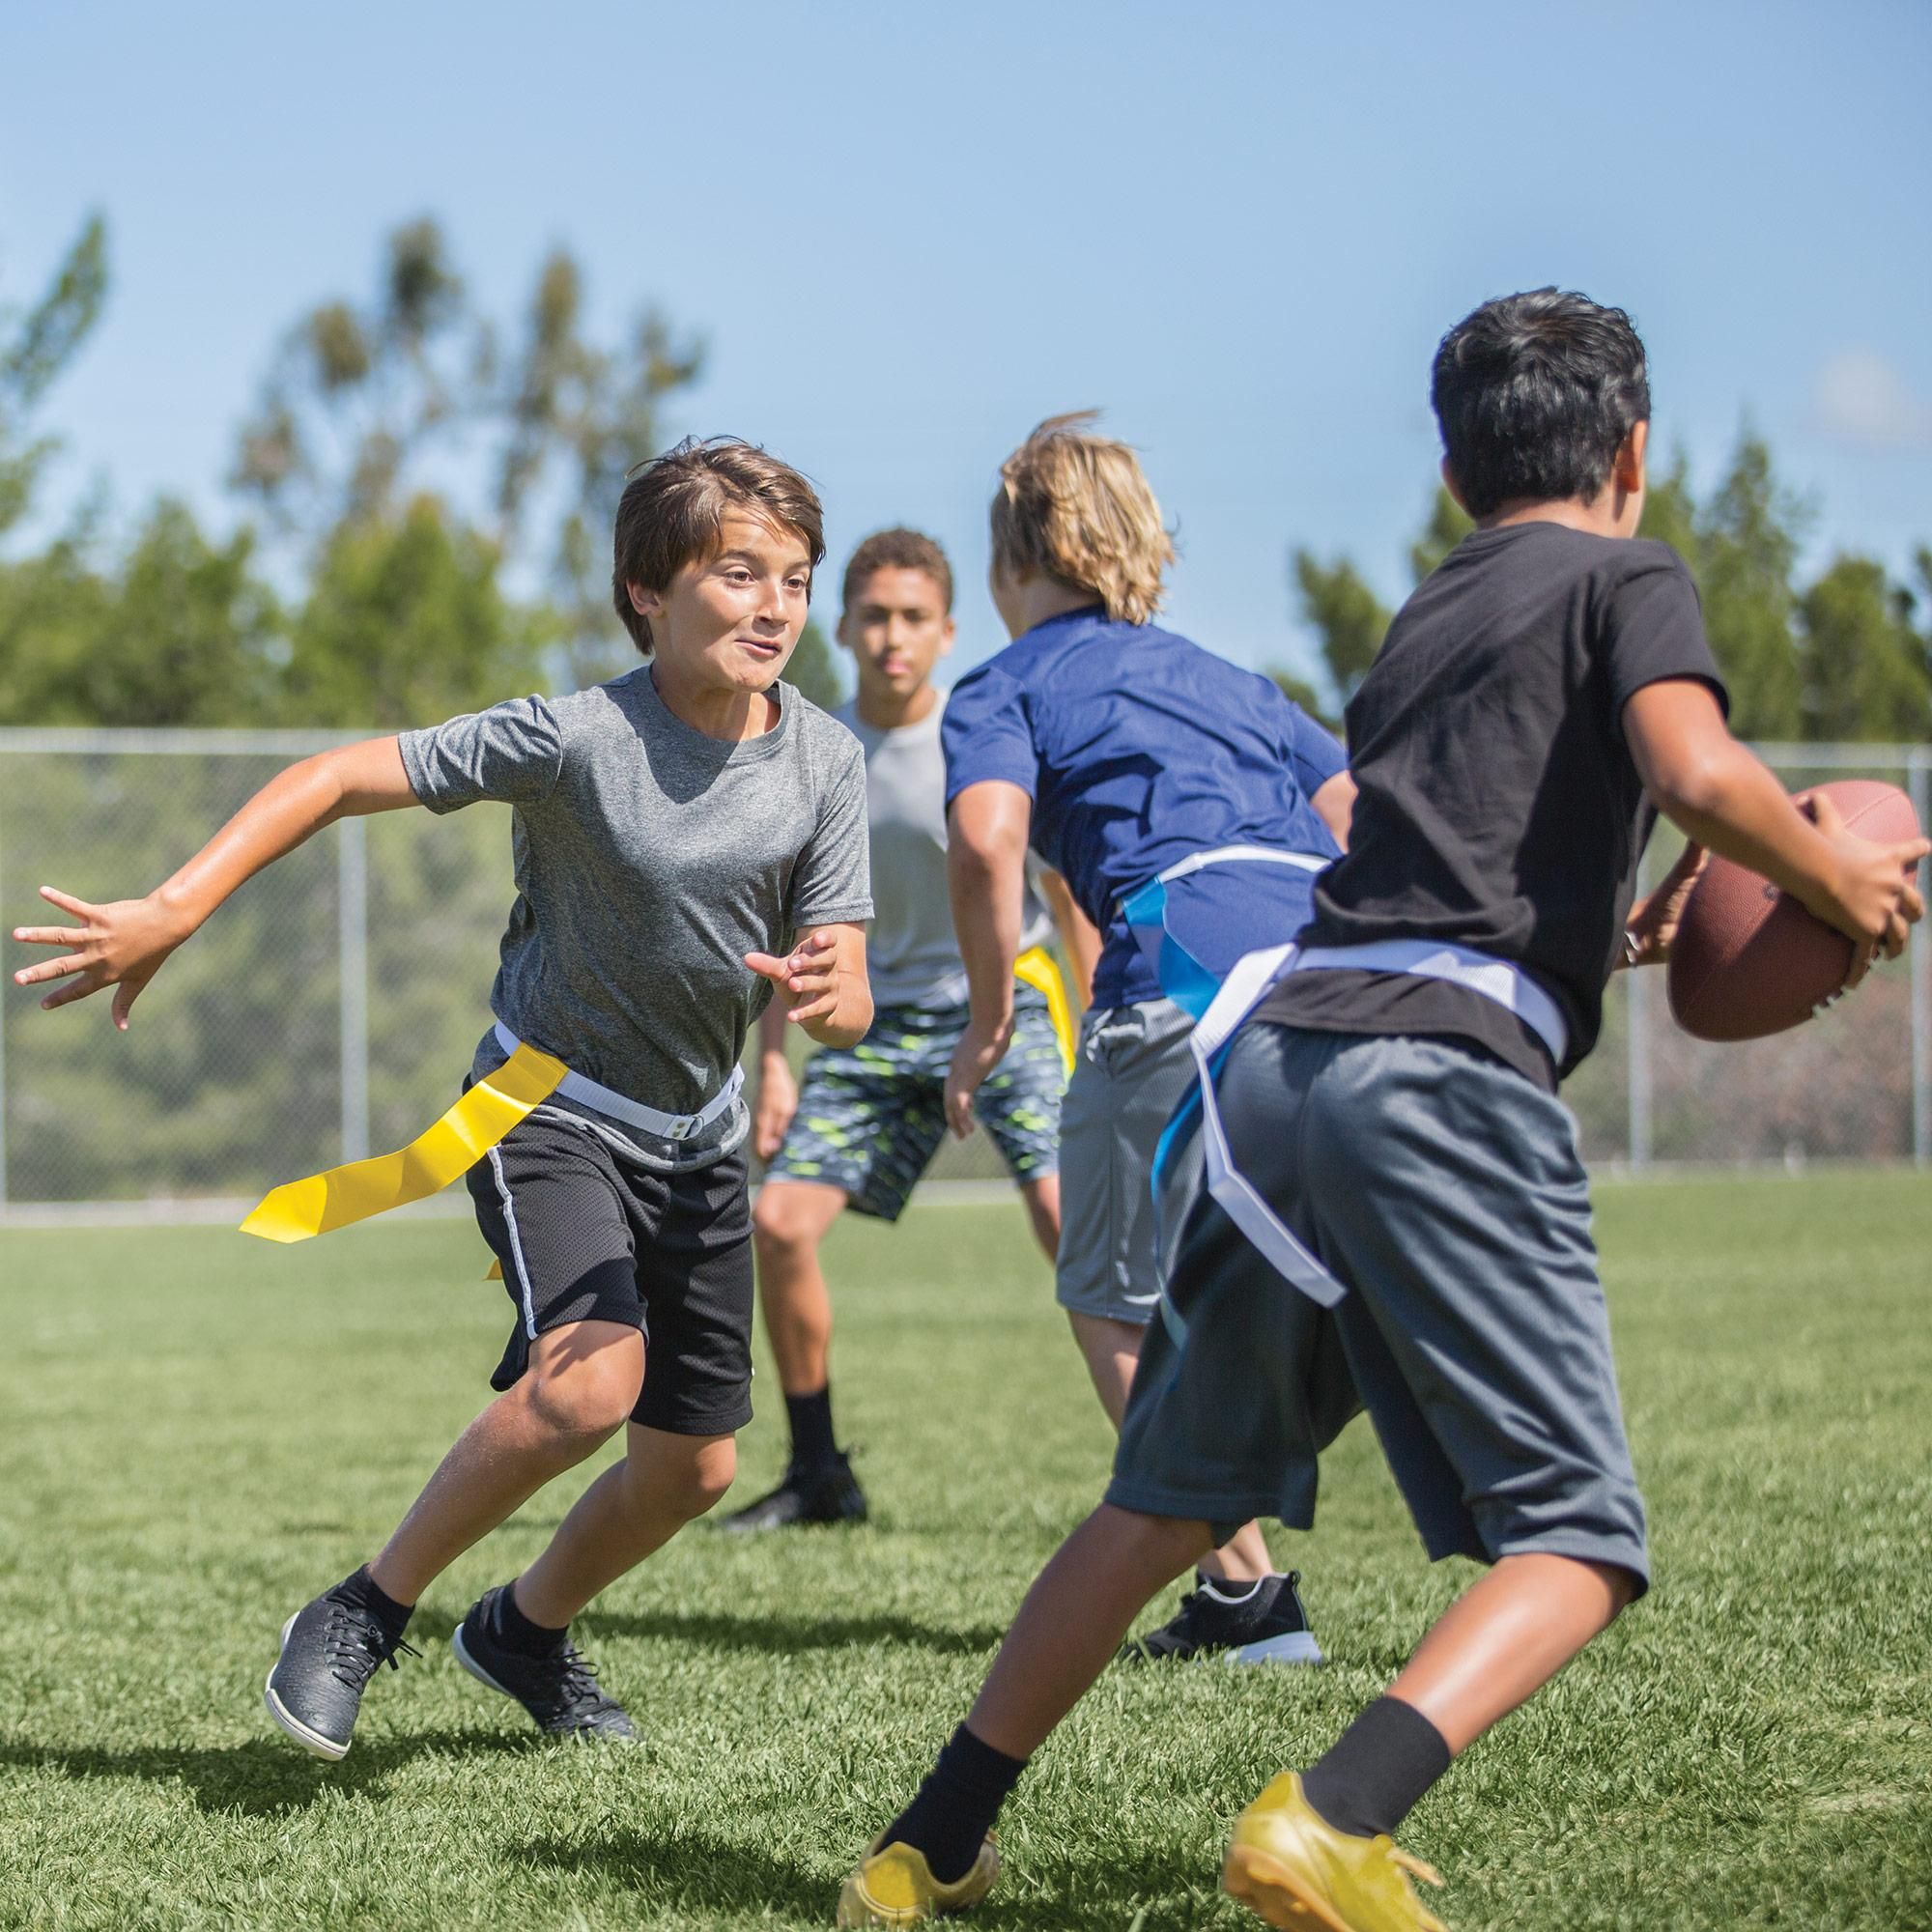 SKLZ 10-Man Flag Football Deluxe Set W/Flags and Cones ...